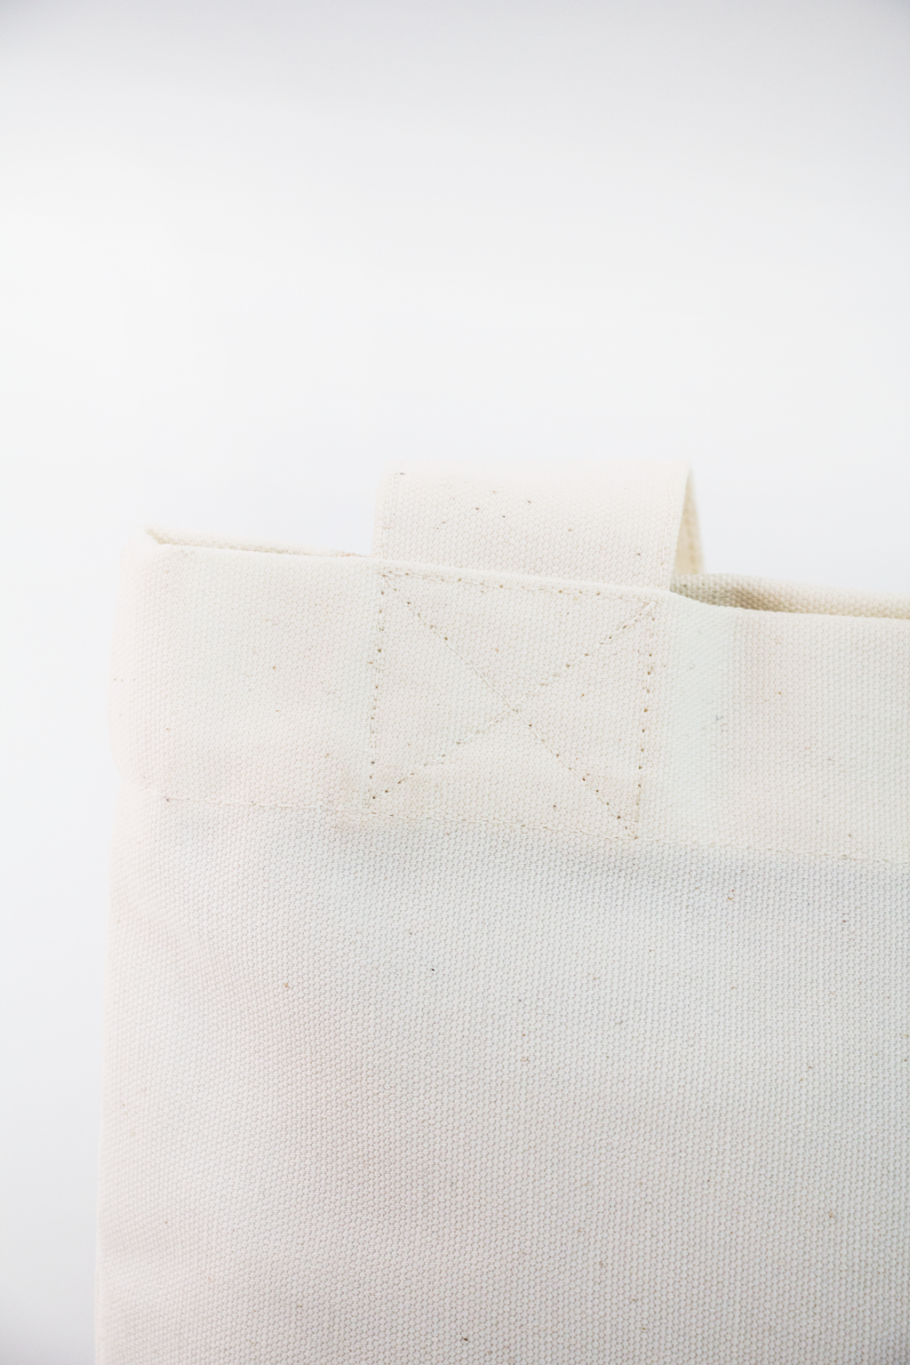 Detail heavy-duty totebag - Offwhite